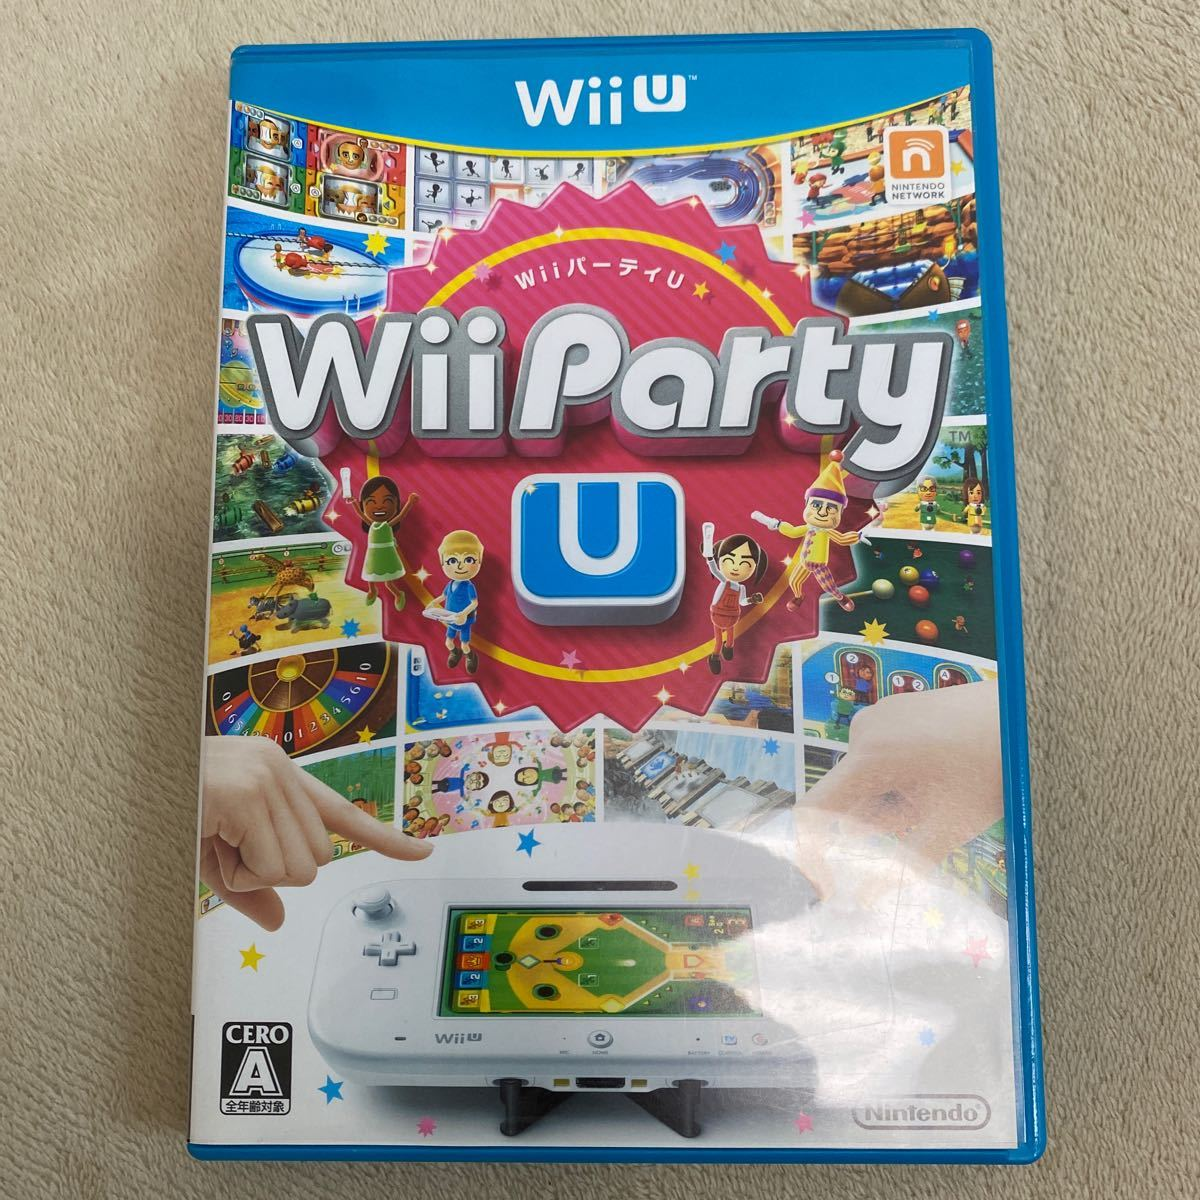 WiiパーティU Wii Party U WiiU ソフト 任天堂 Wii Party